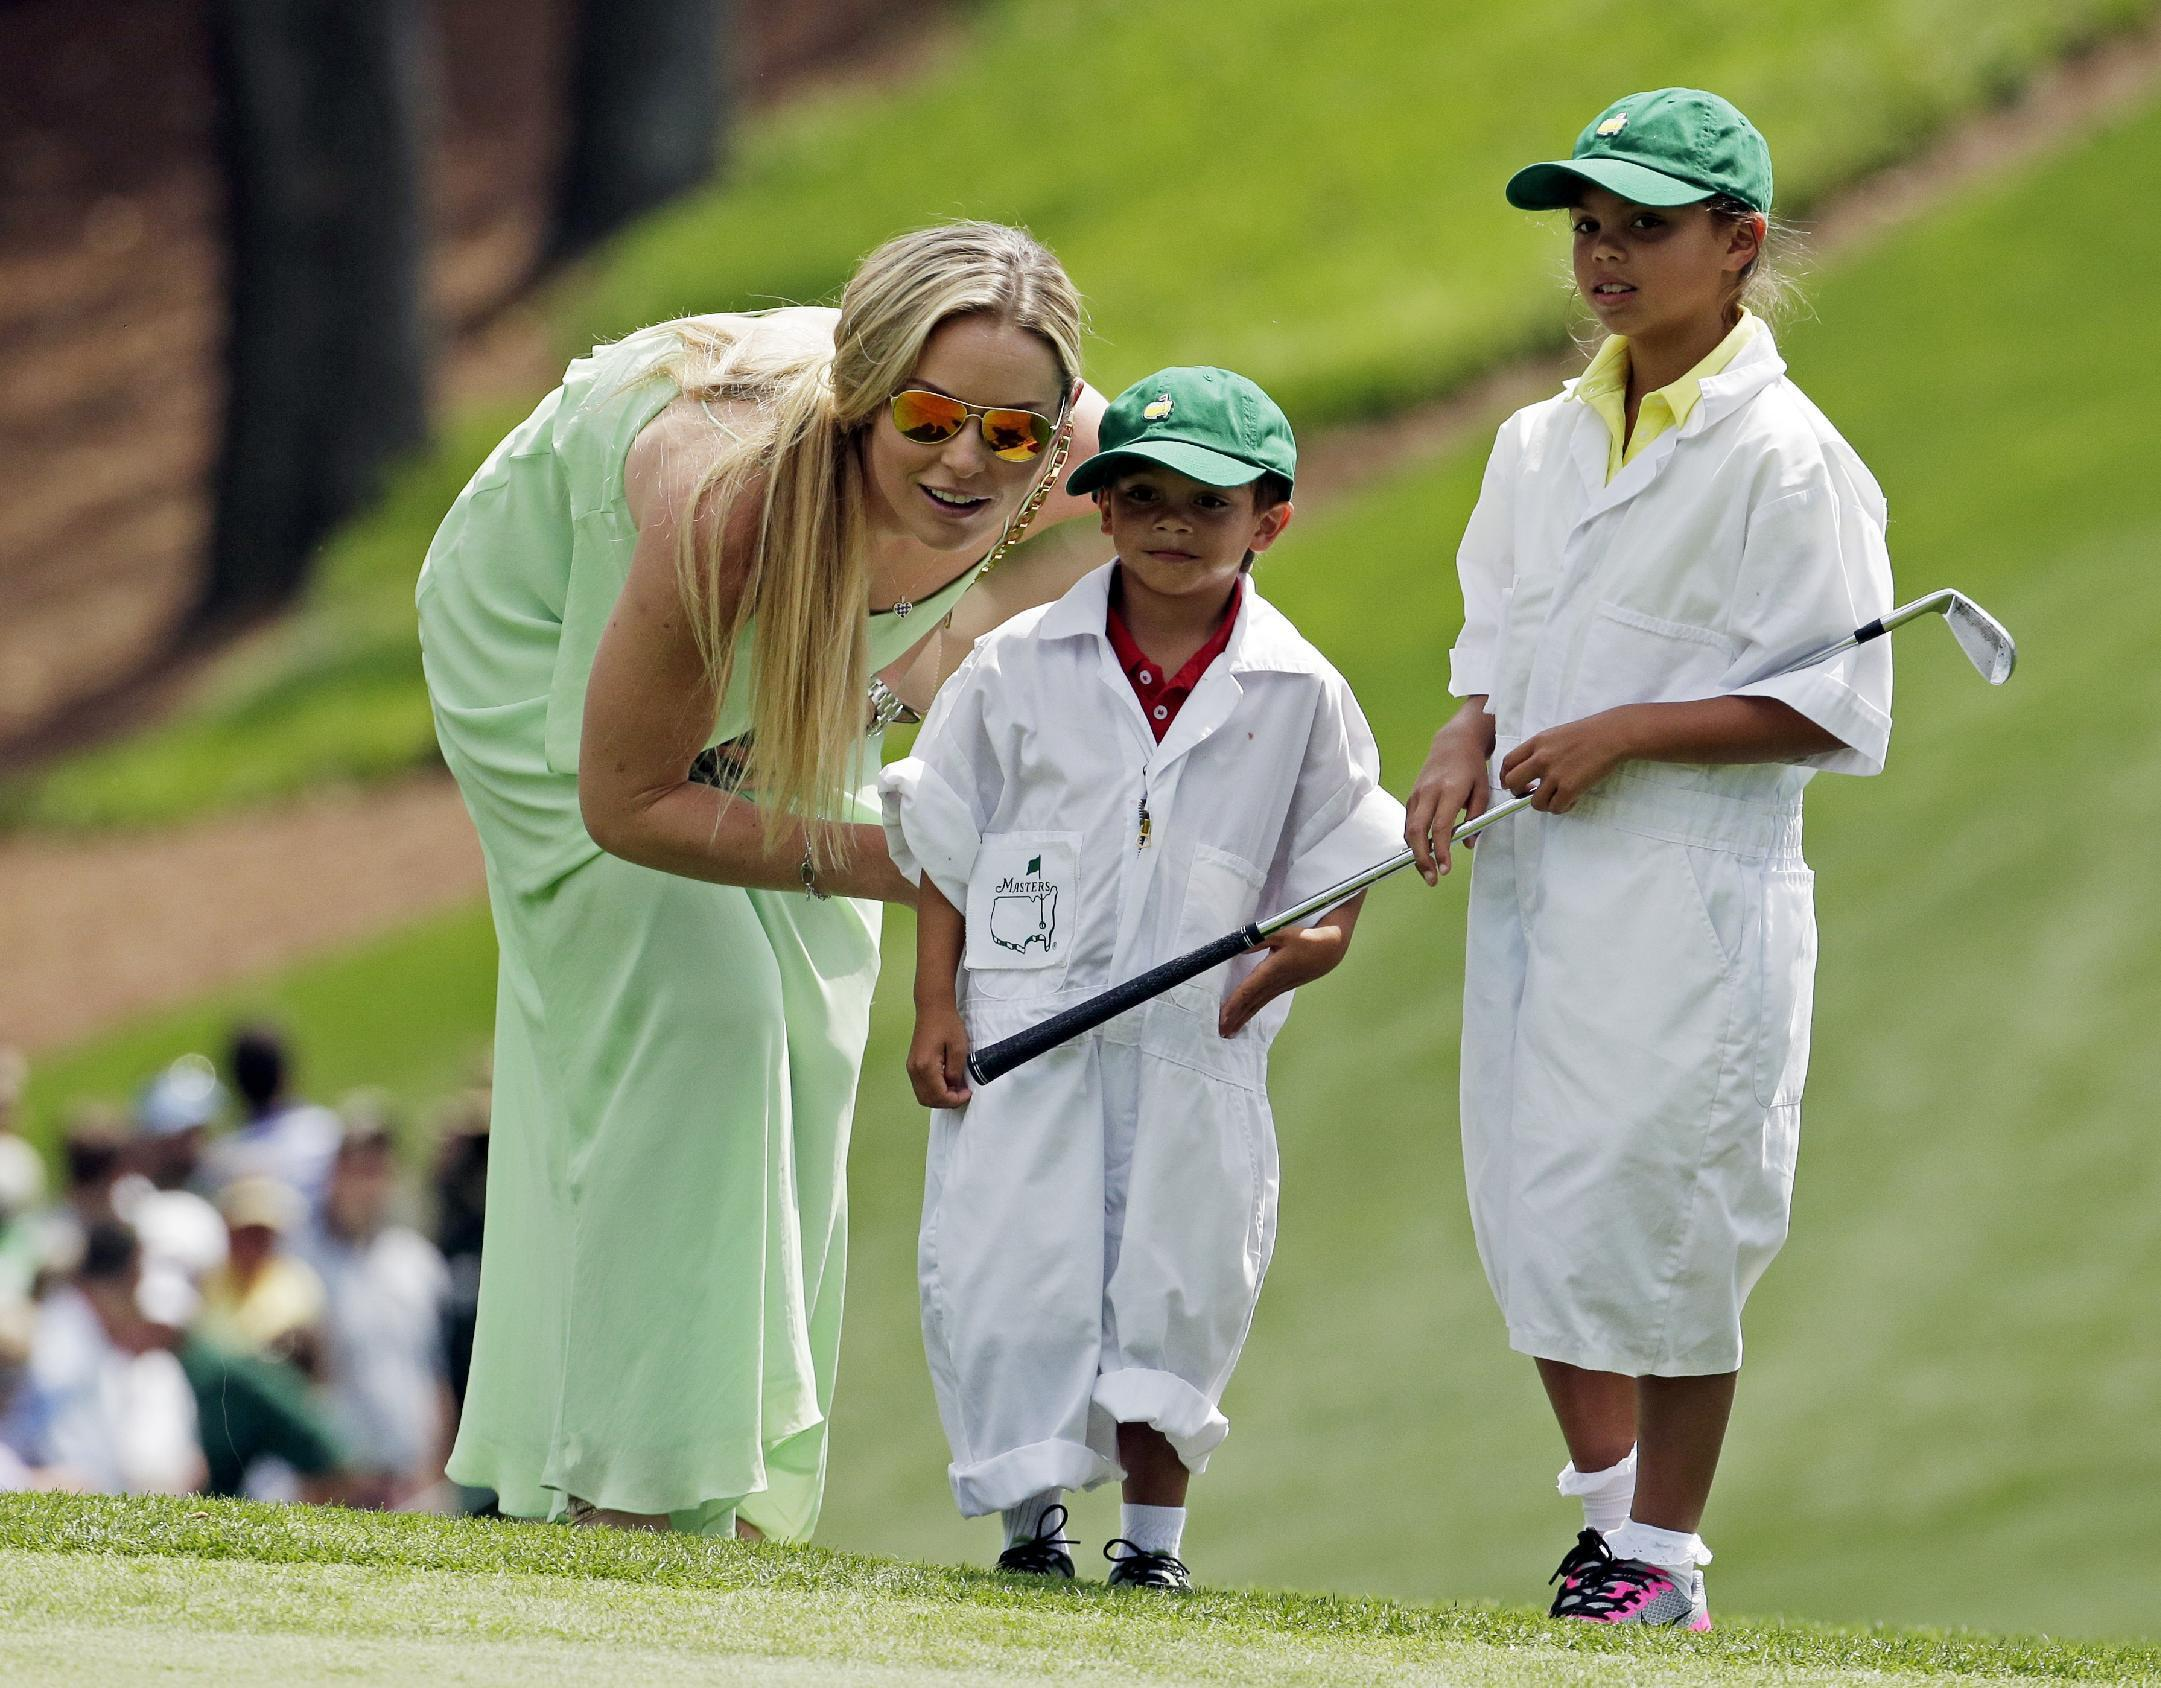 Tiger Woods' son Charlie finished T-2 in U.S. Kids junior event